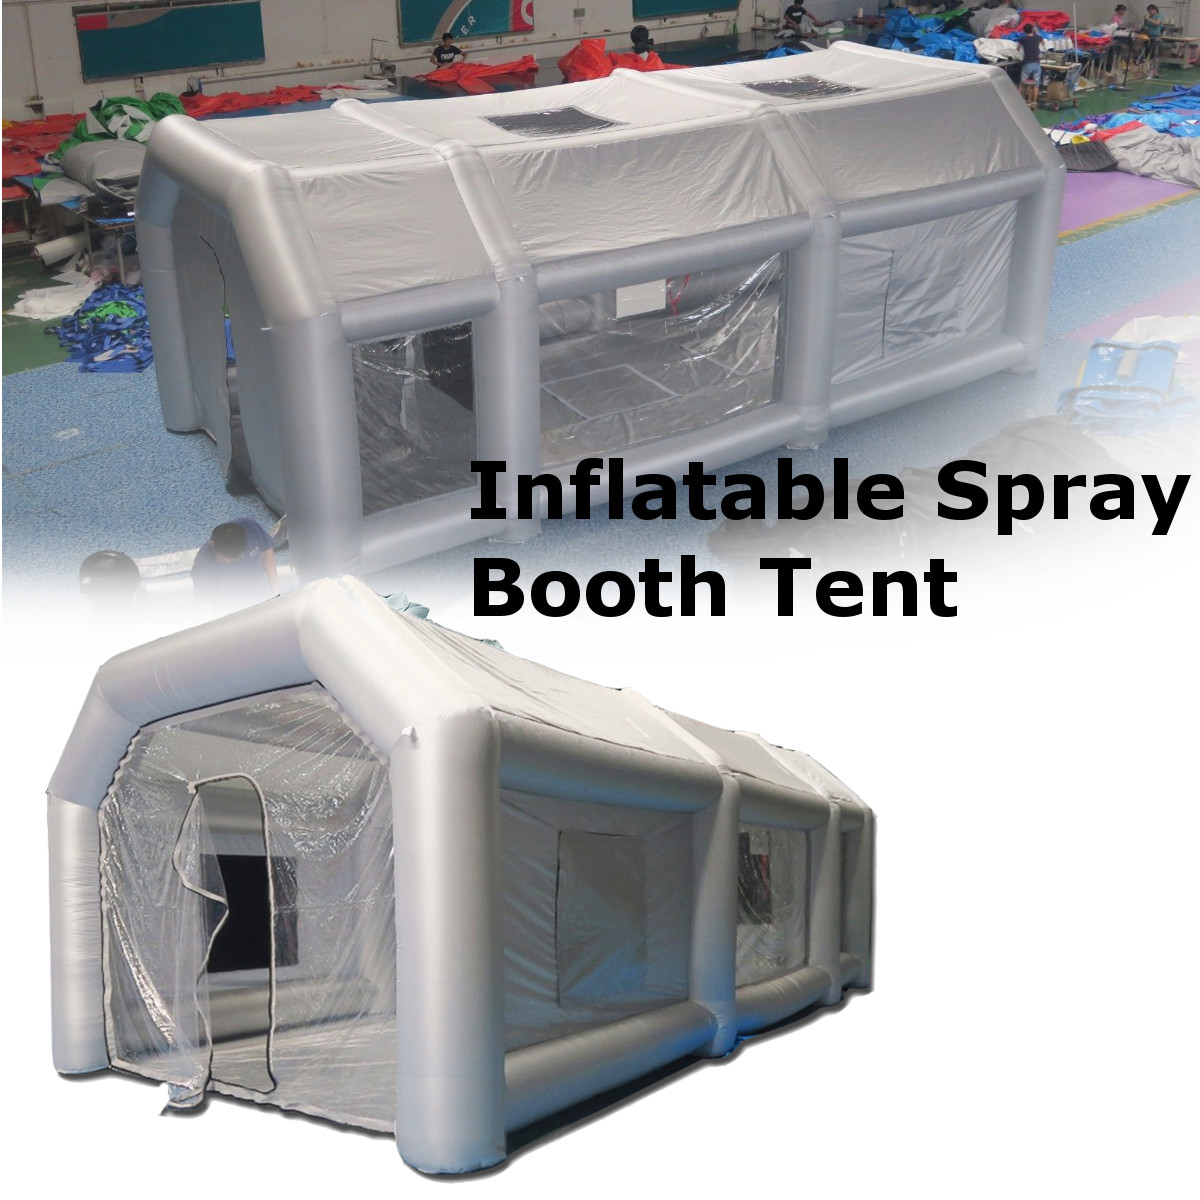 Portable Giant Oxford Cloth Inflatable Tent Workstation Spray Paint With 110V Blower